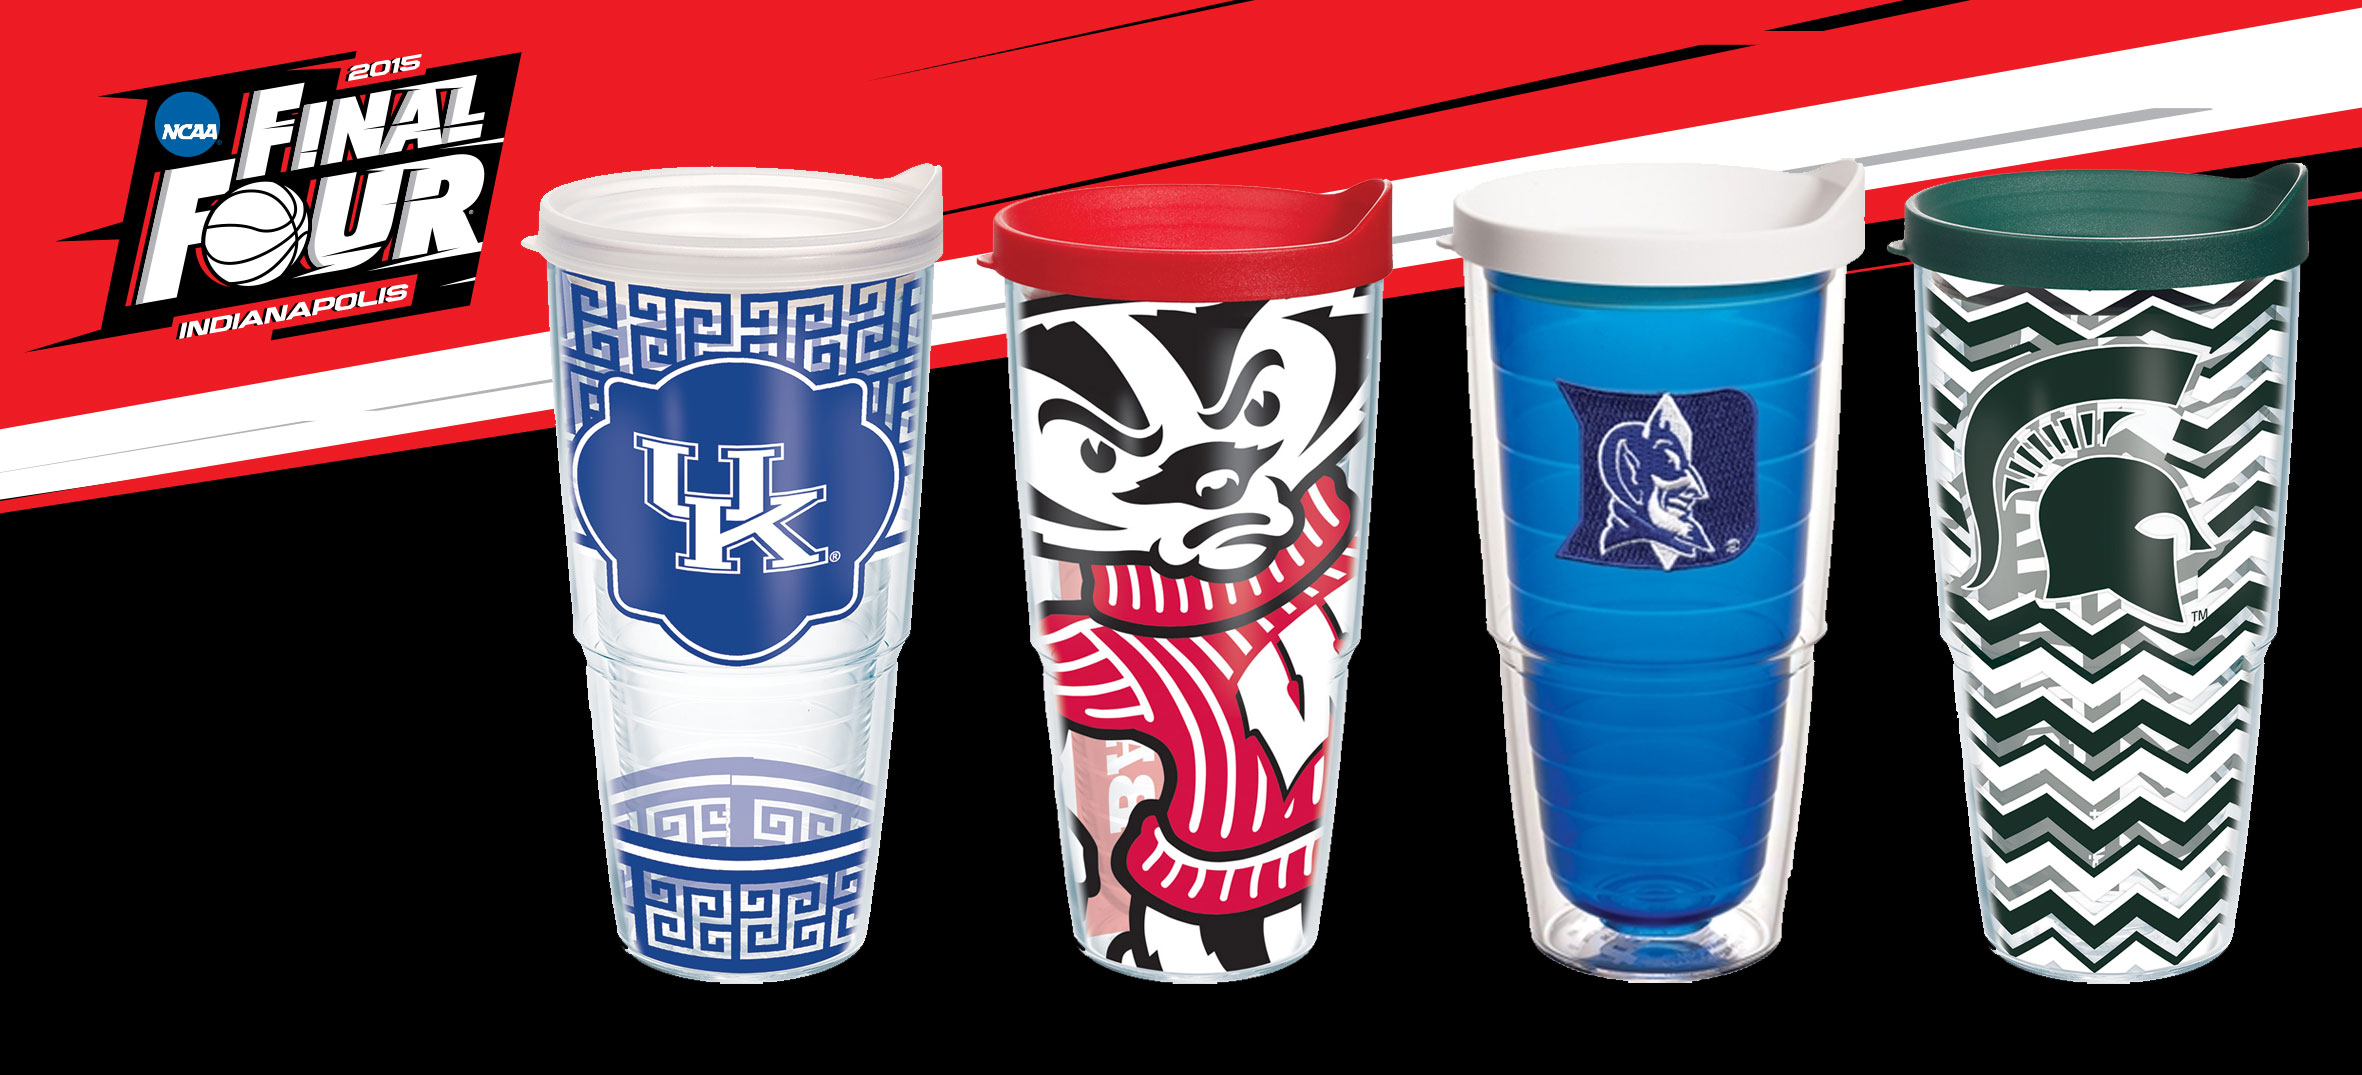 NCAA Final Four 2015 tervis cups